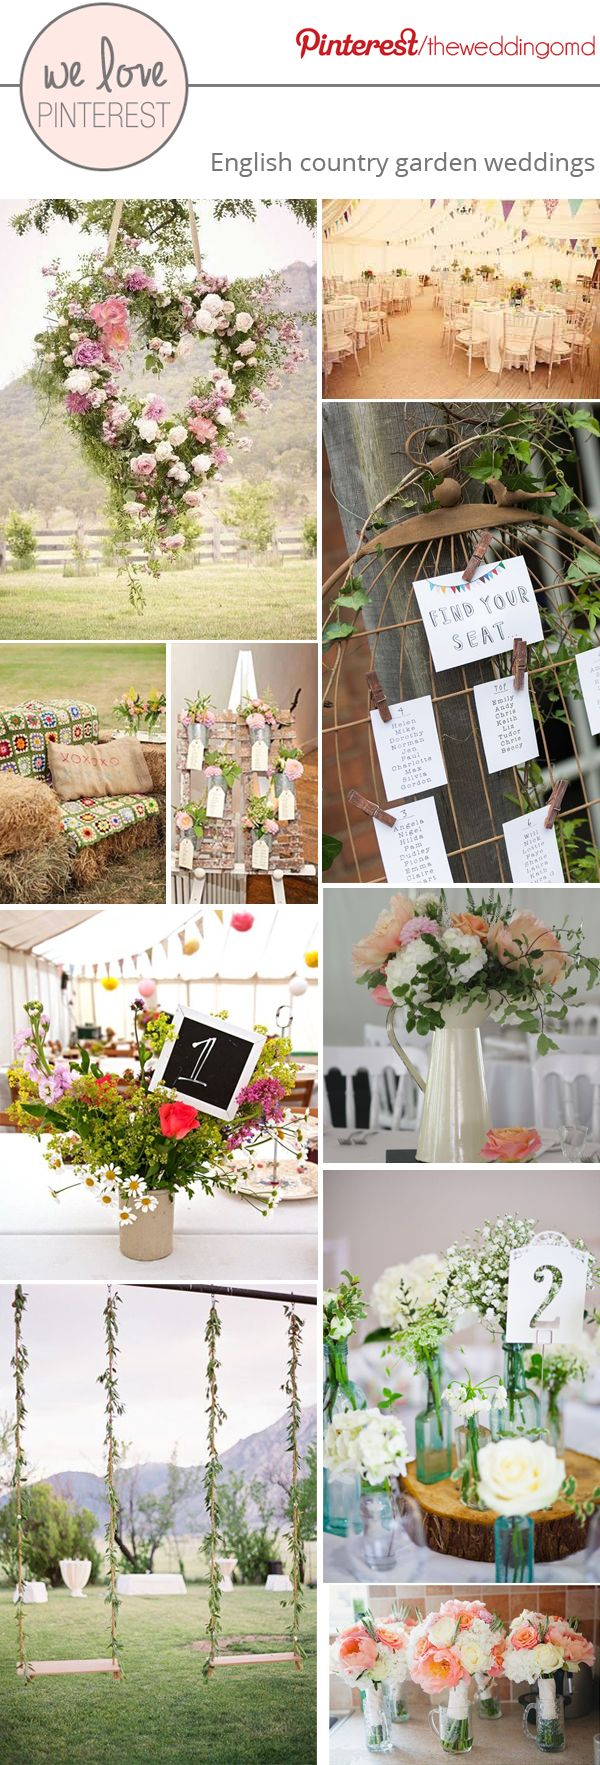 English Country Garden Wedding Decorations and Ideas